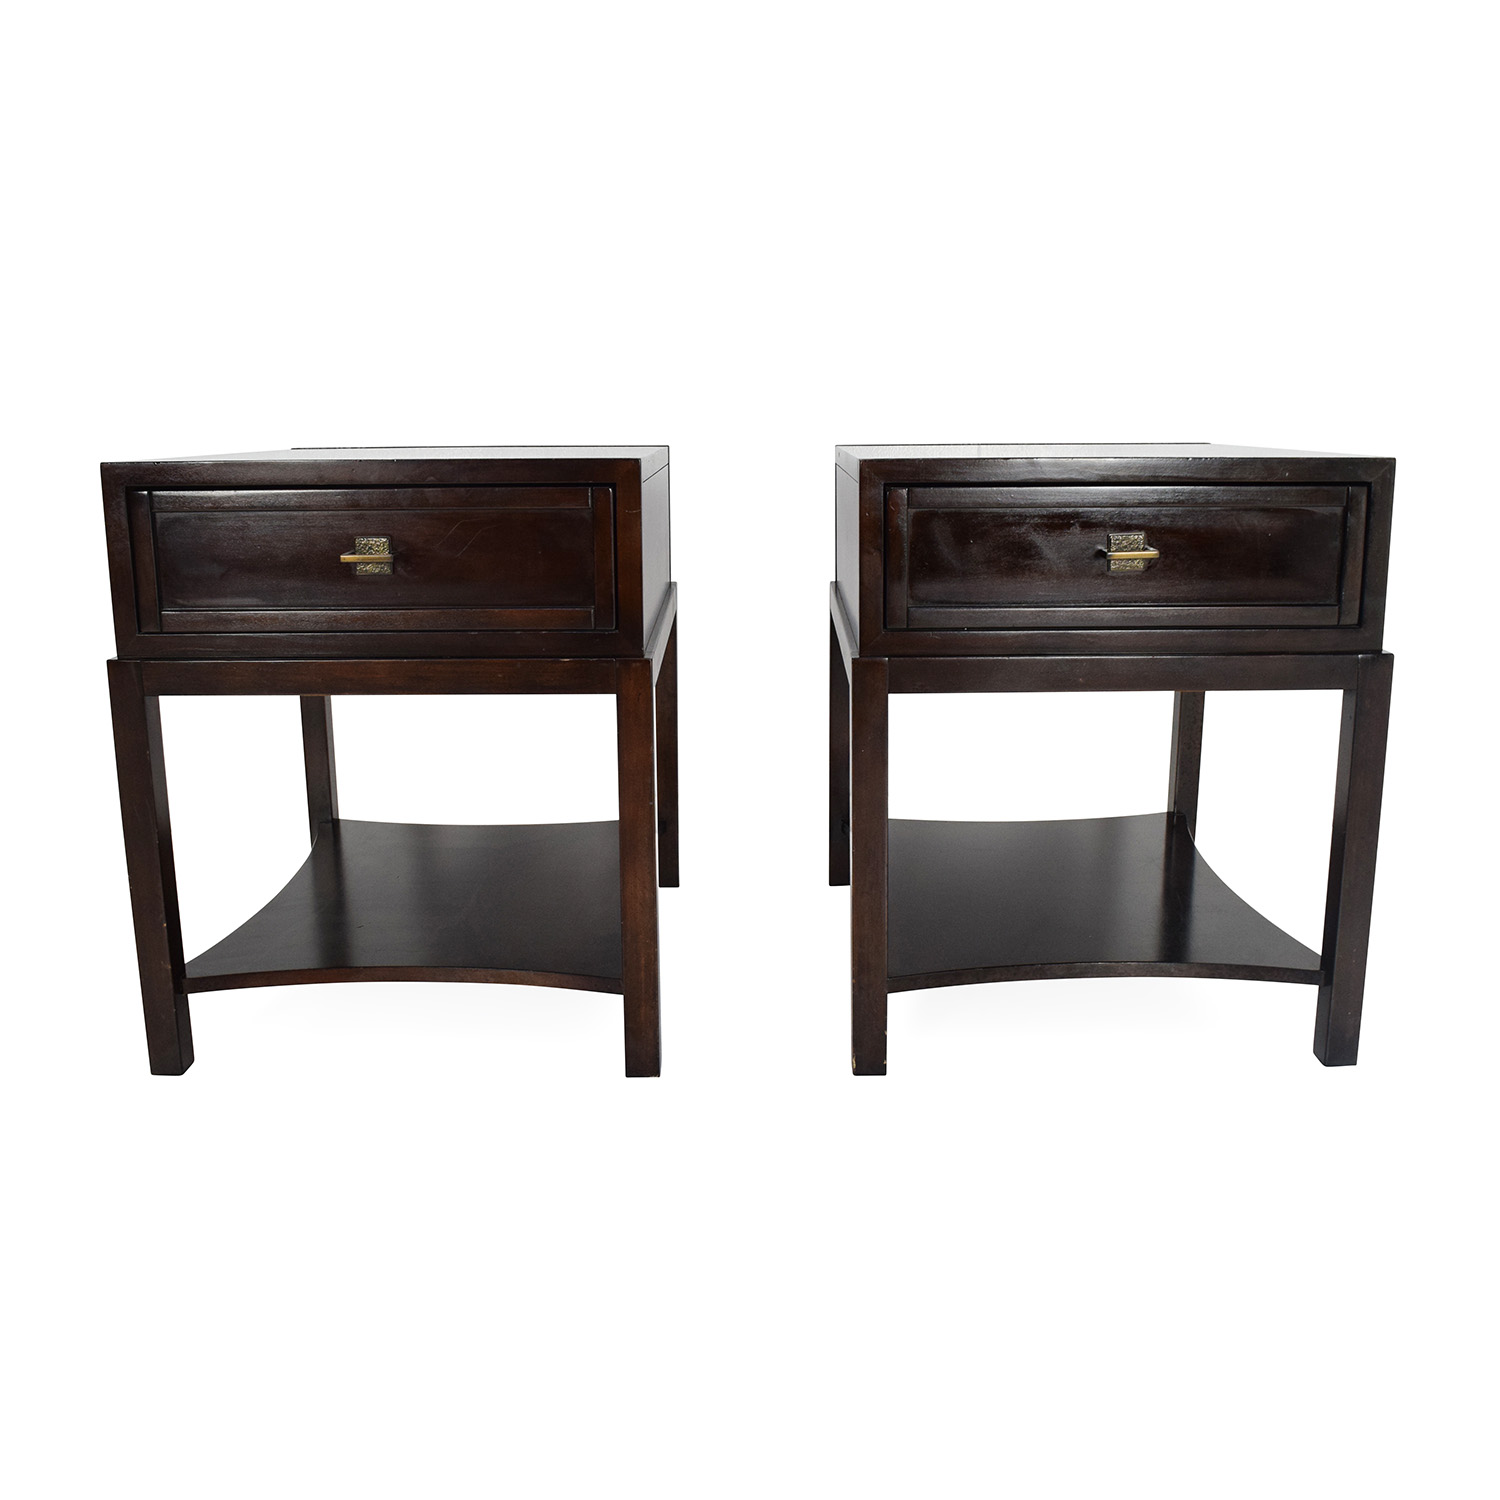 Drexel Heritage Drexel Heritage End Tables dimensions